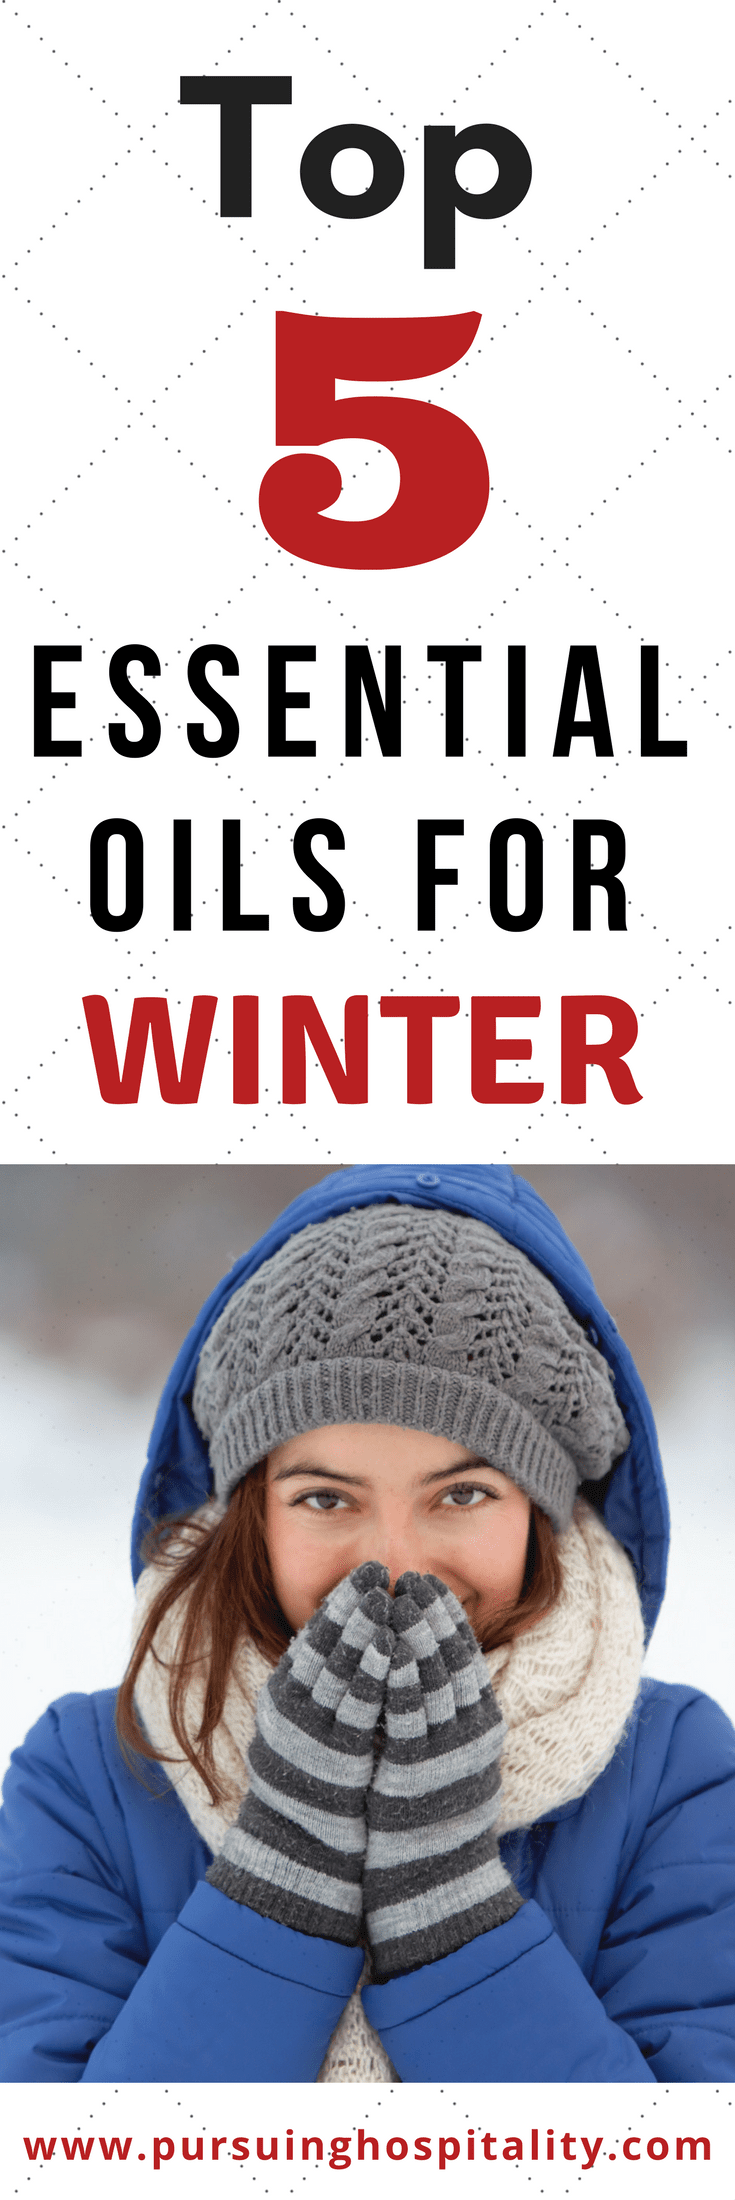 Top 5 Essential Oils for Winter Pinterest